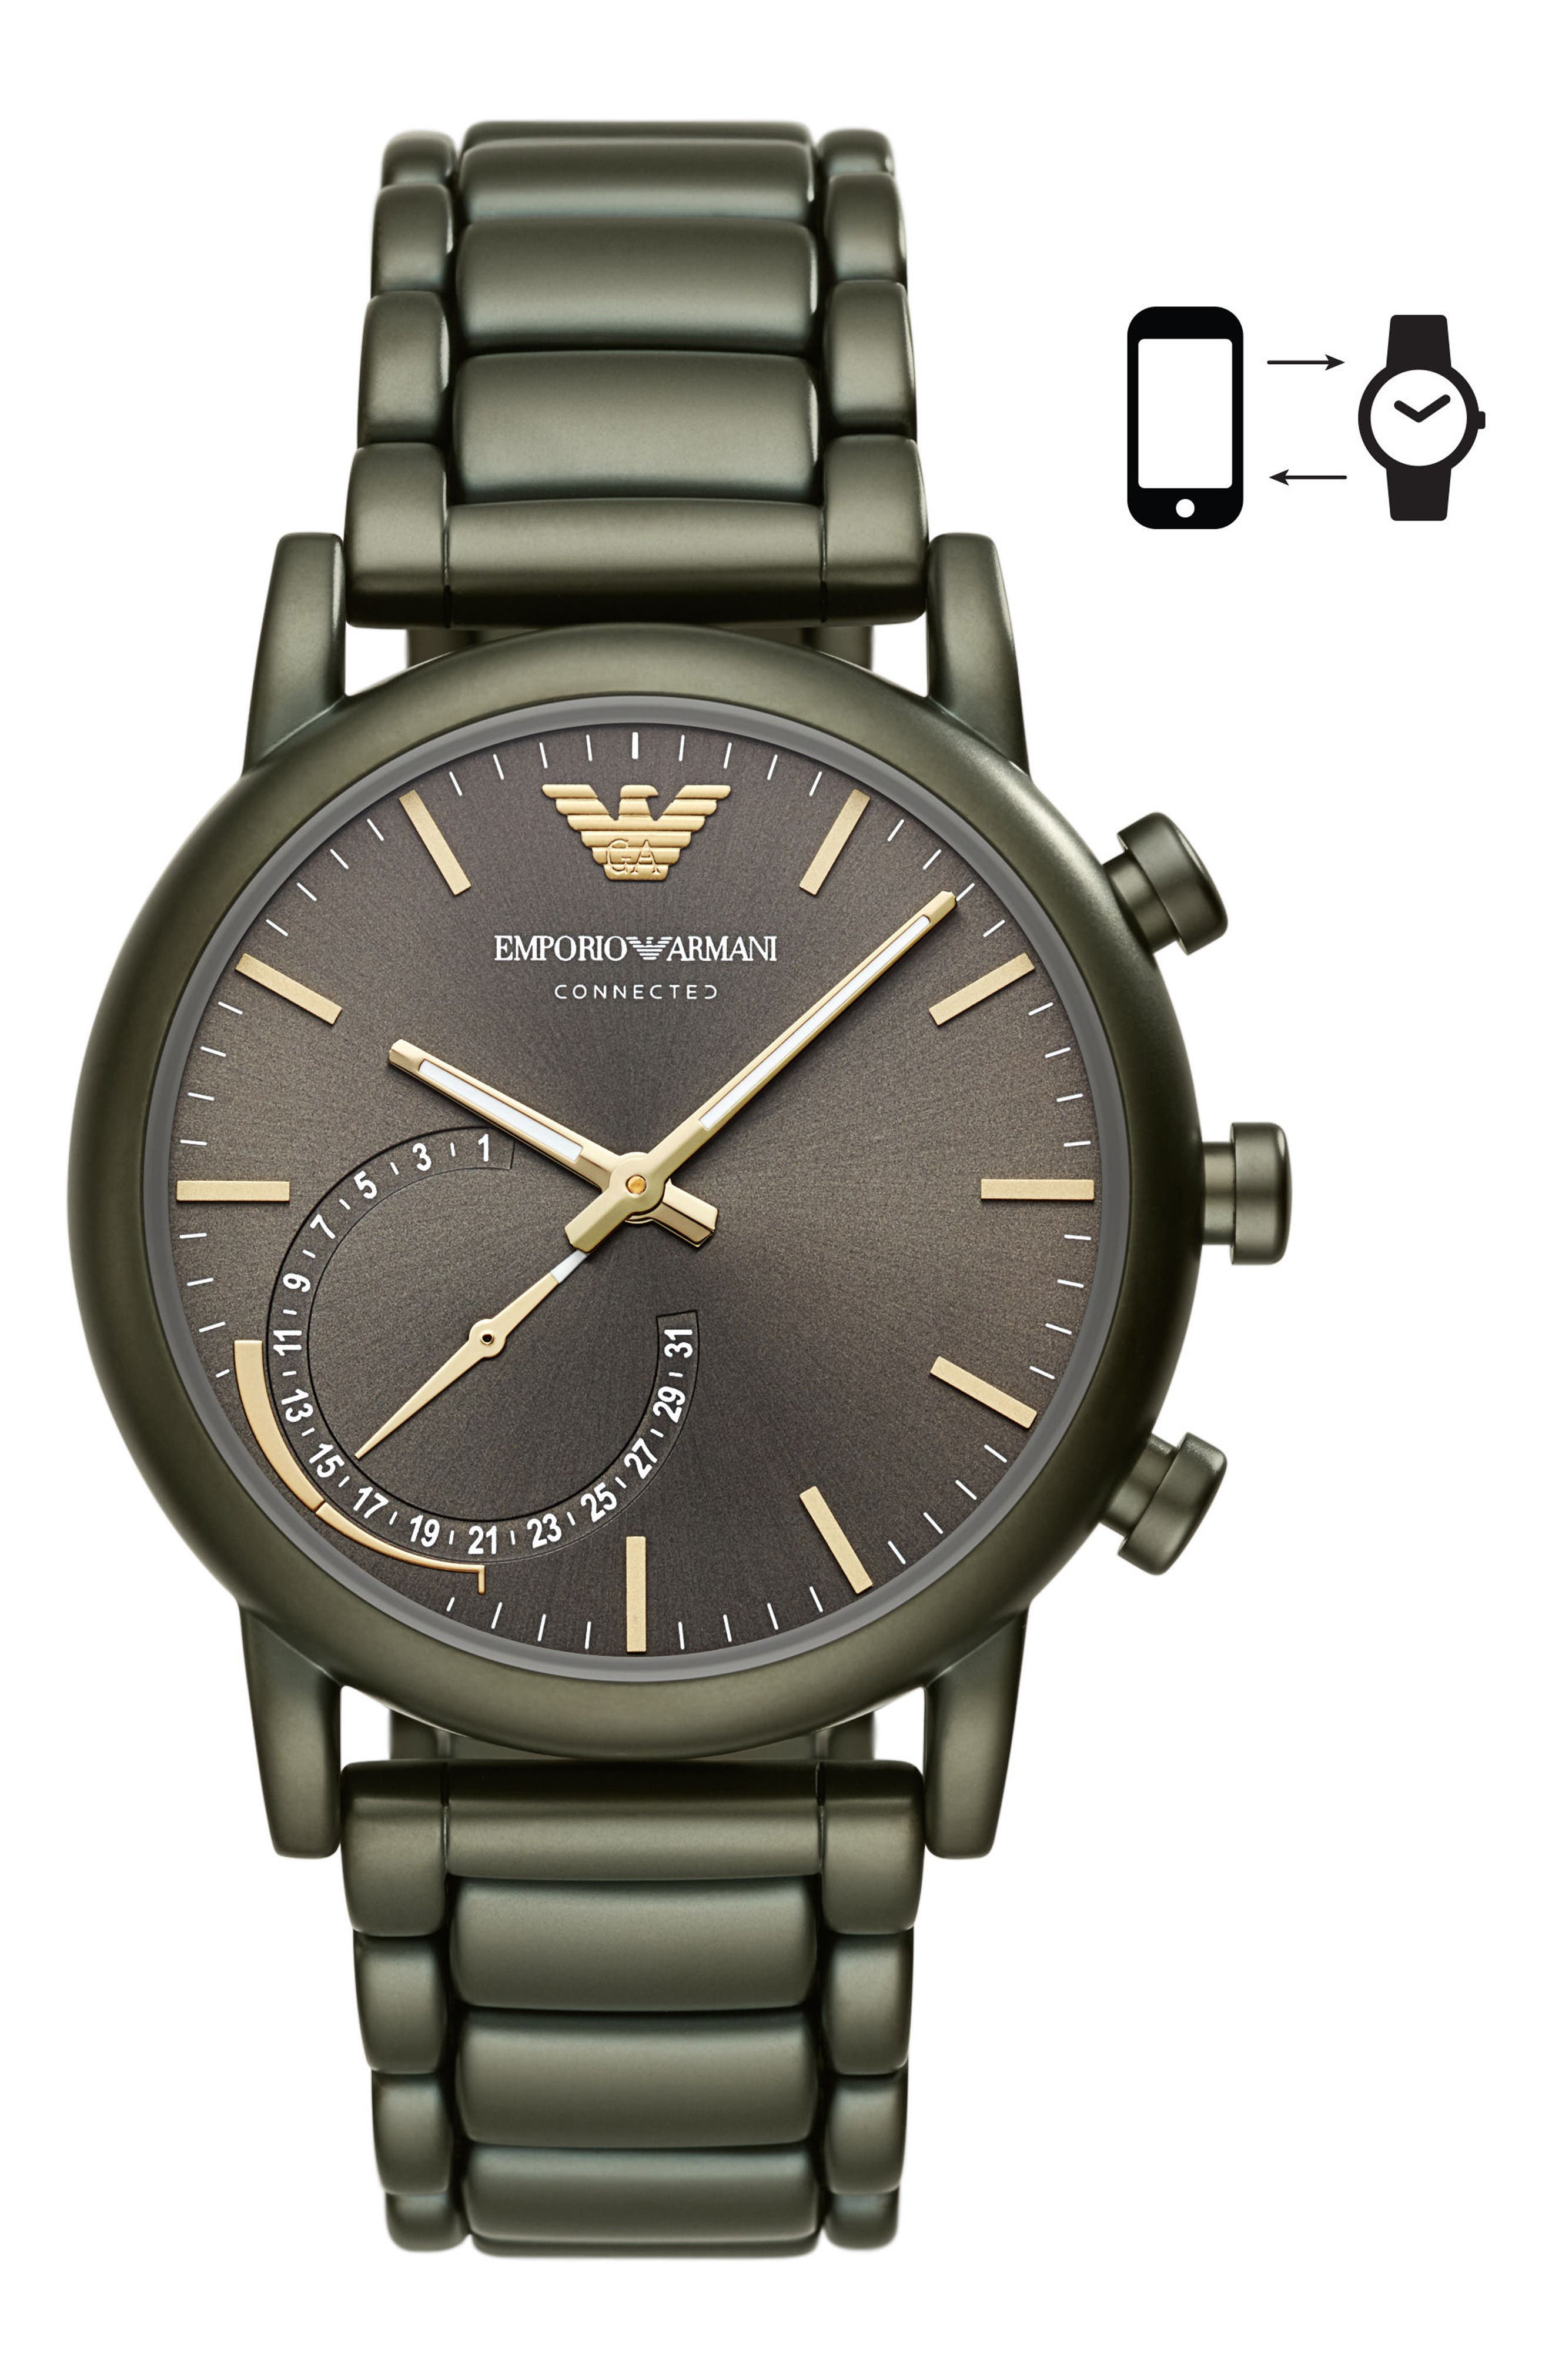 Emporio Armani Connected Hybrid Bracelet Smartwatch, 43mm